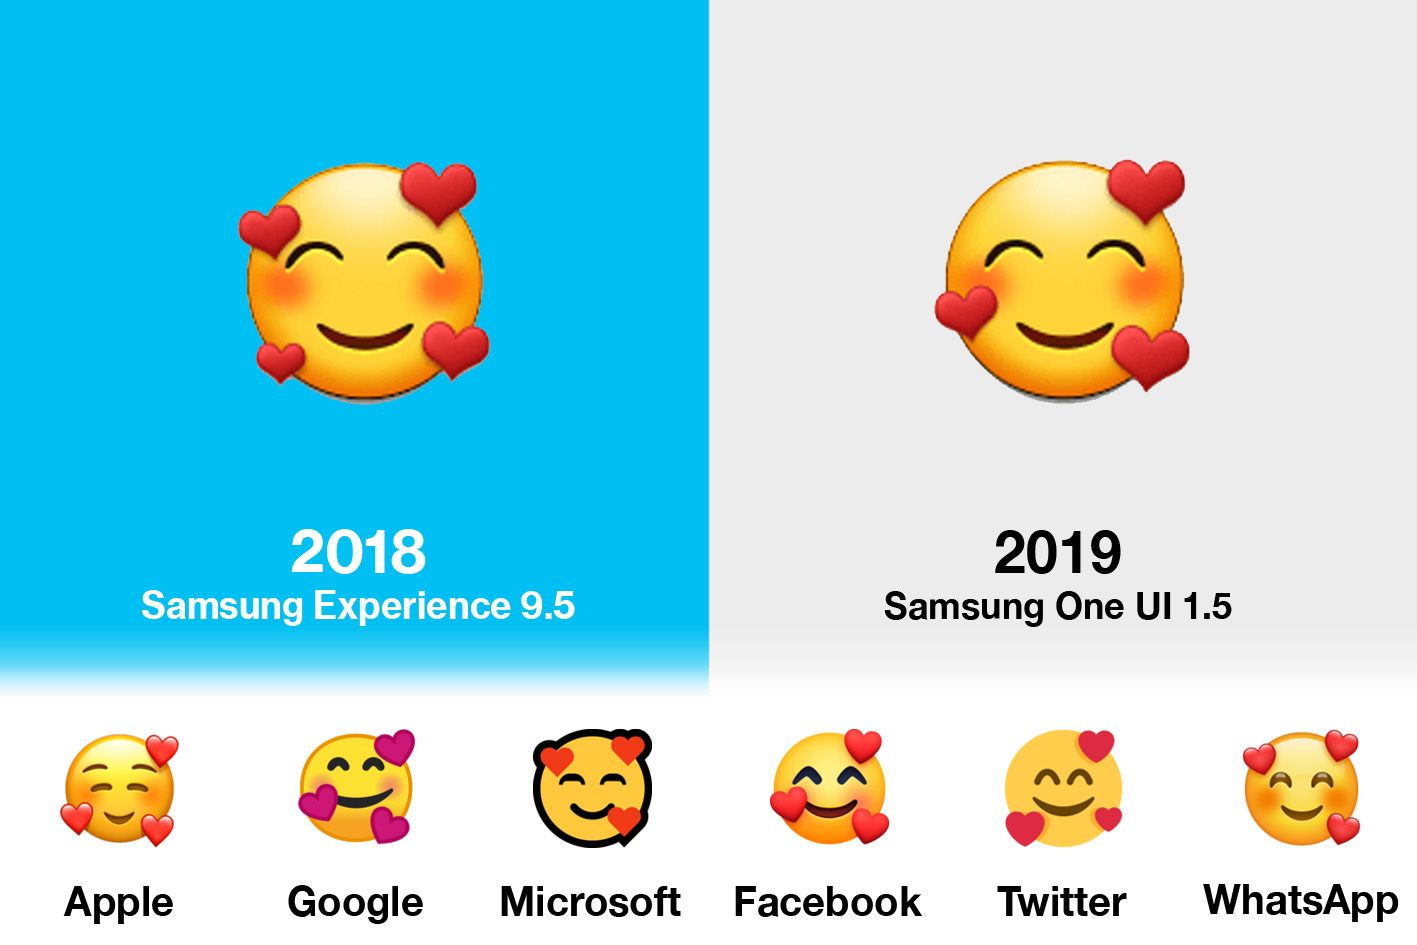 Emojipedia-End-Of-Year-Comparison-Image--Smiling-Face-With-Hearts-1